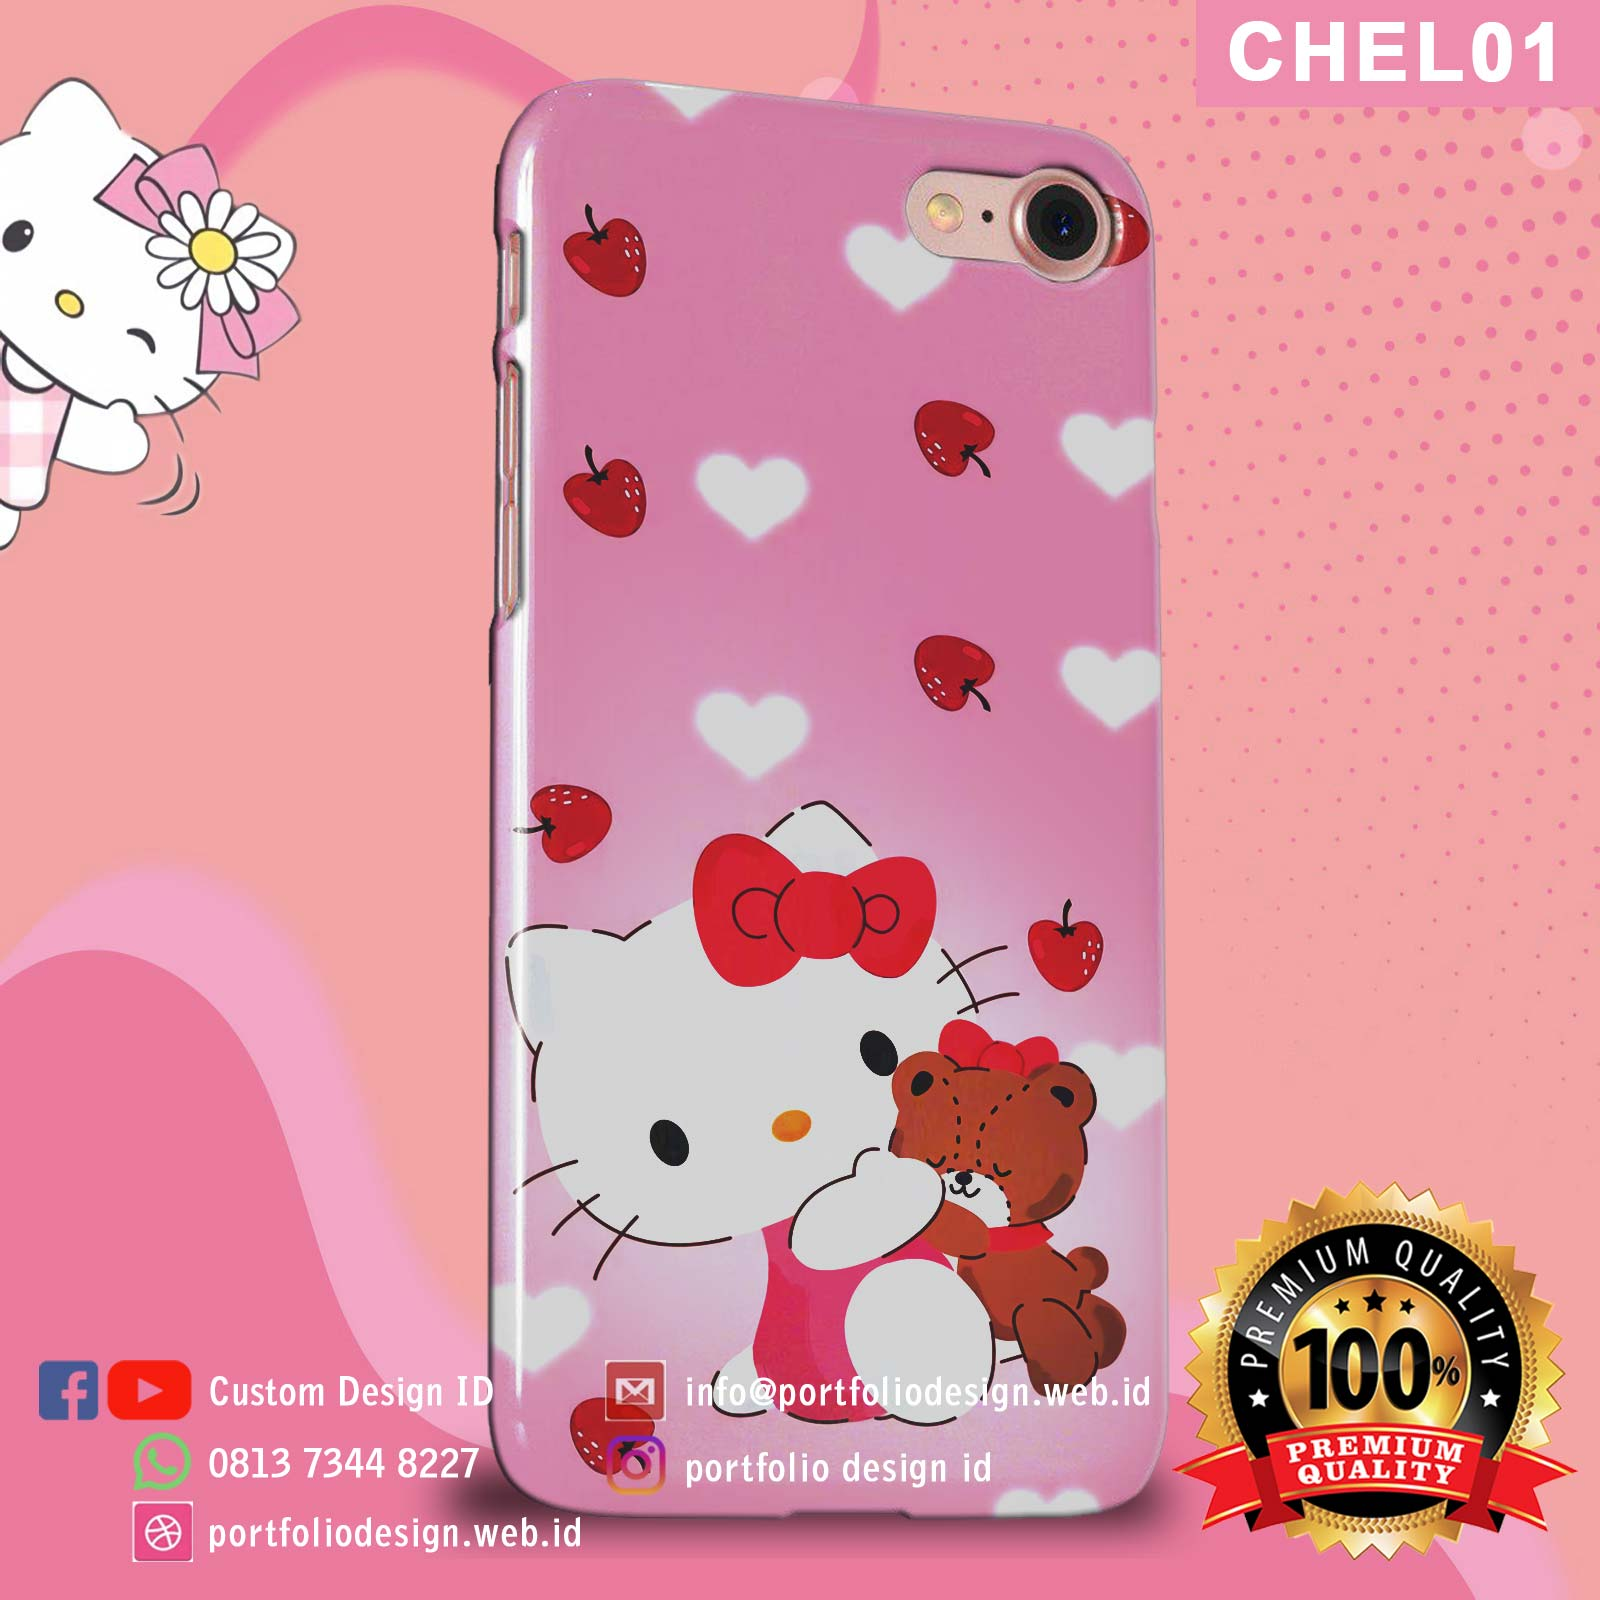 Casing hp softcase hardcase Hello Kitty CHEL01